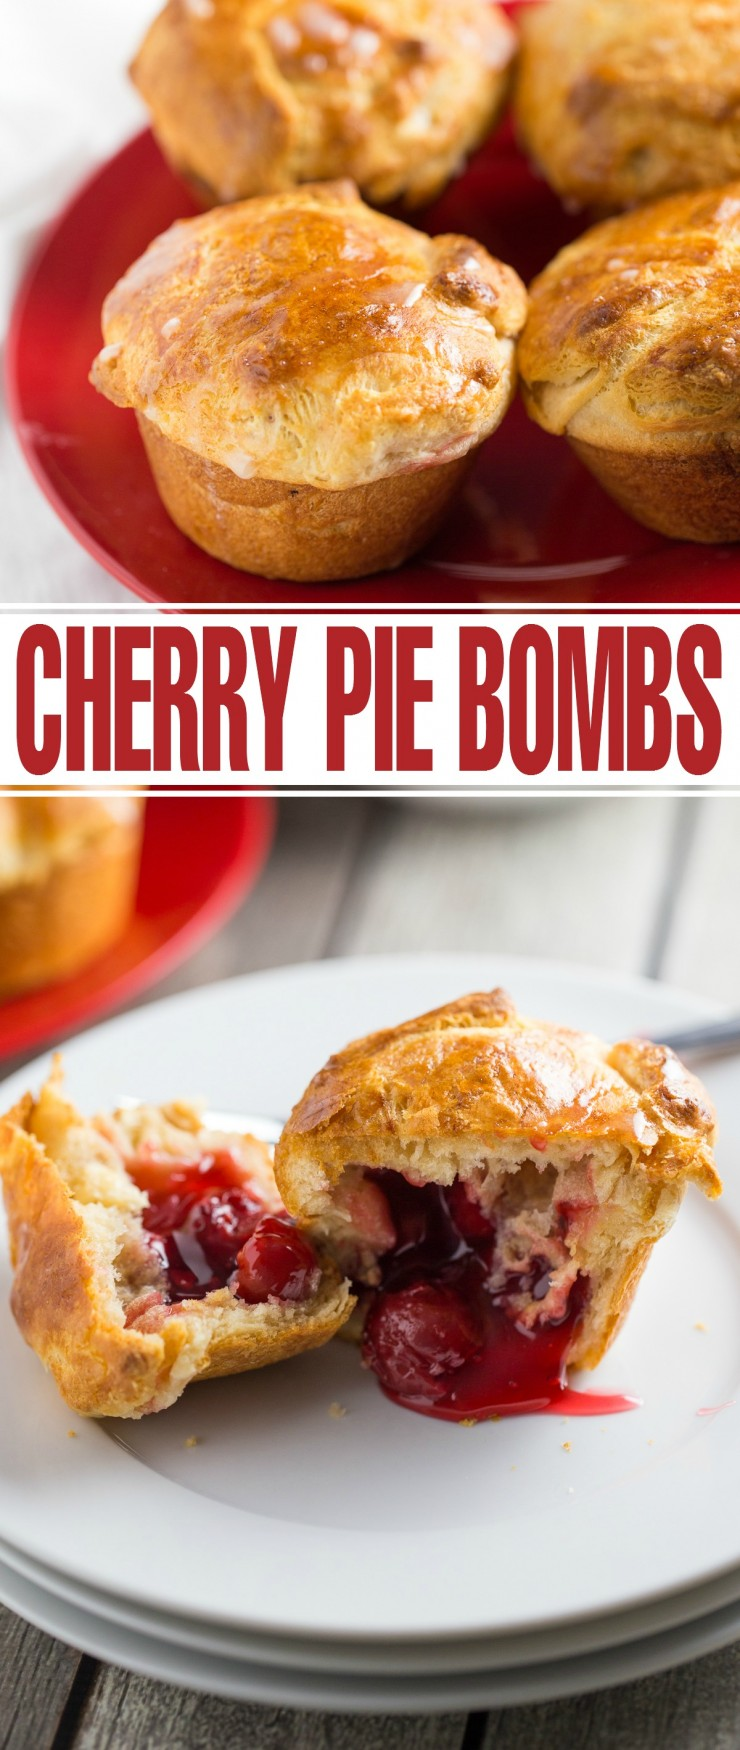 These Cherry Pie Bombs are full of Cherry Pie flavour in a miniature package! Super easy to make, these are a great dessert to serve at dinner parties.